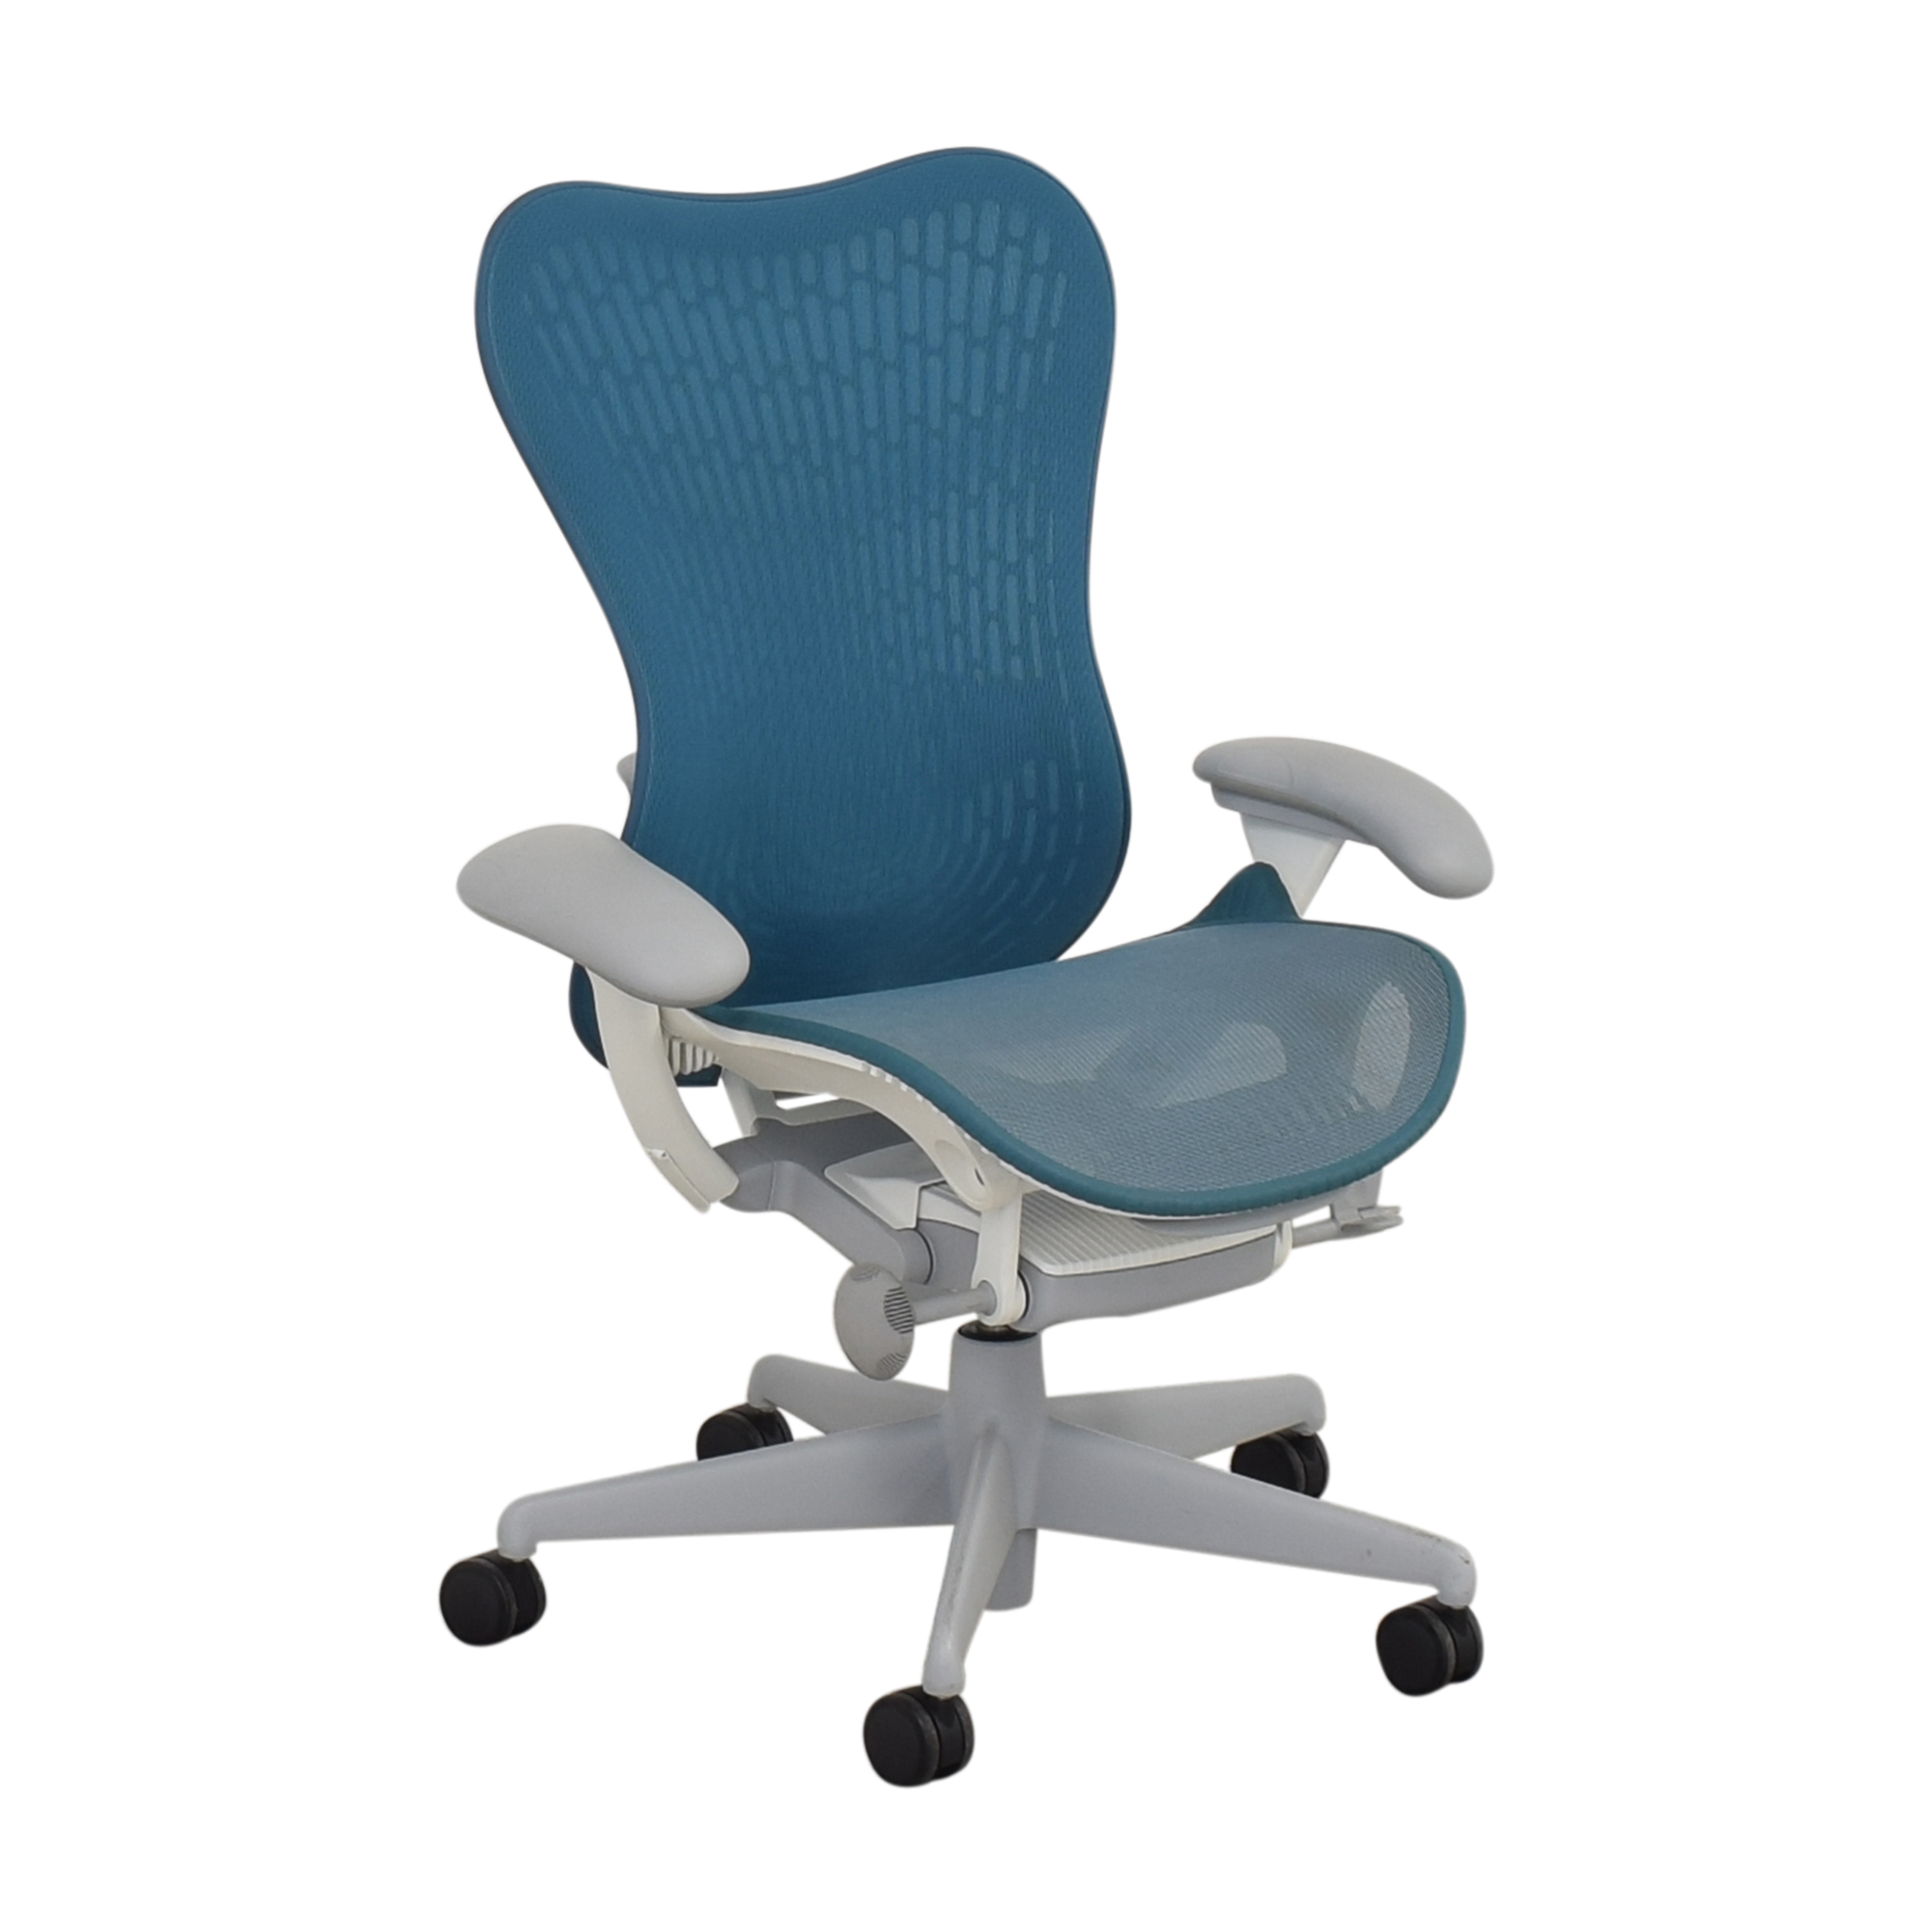 Herman Miller Herman Miller Mirra Chair ma